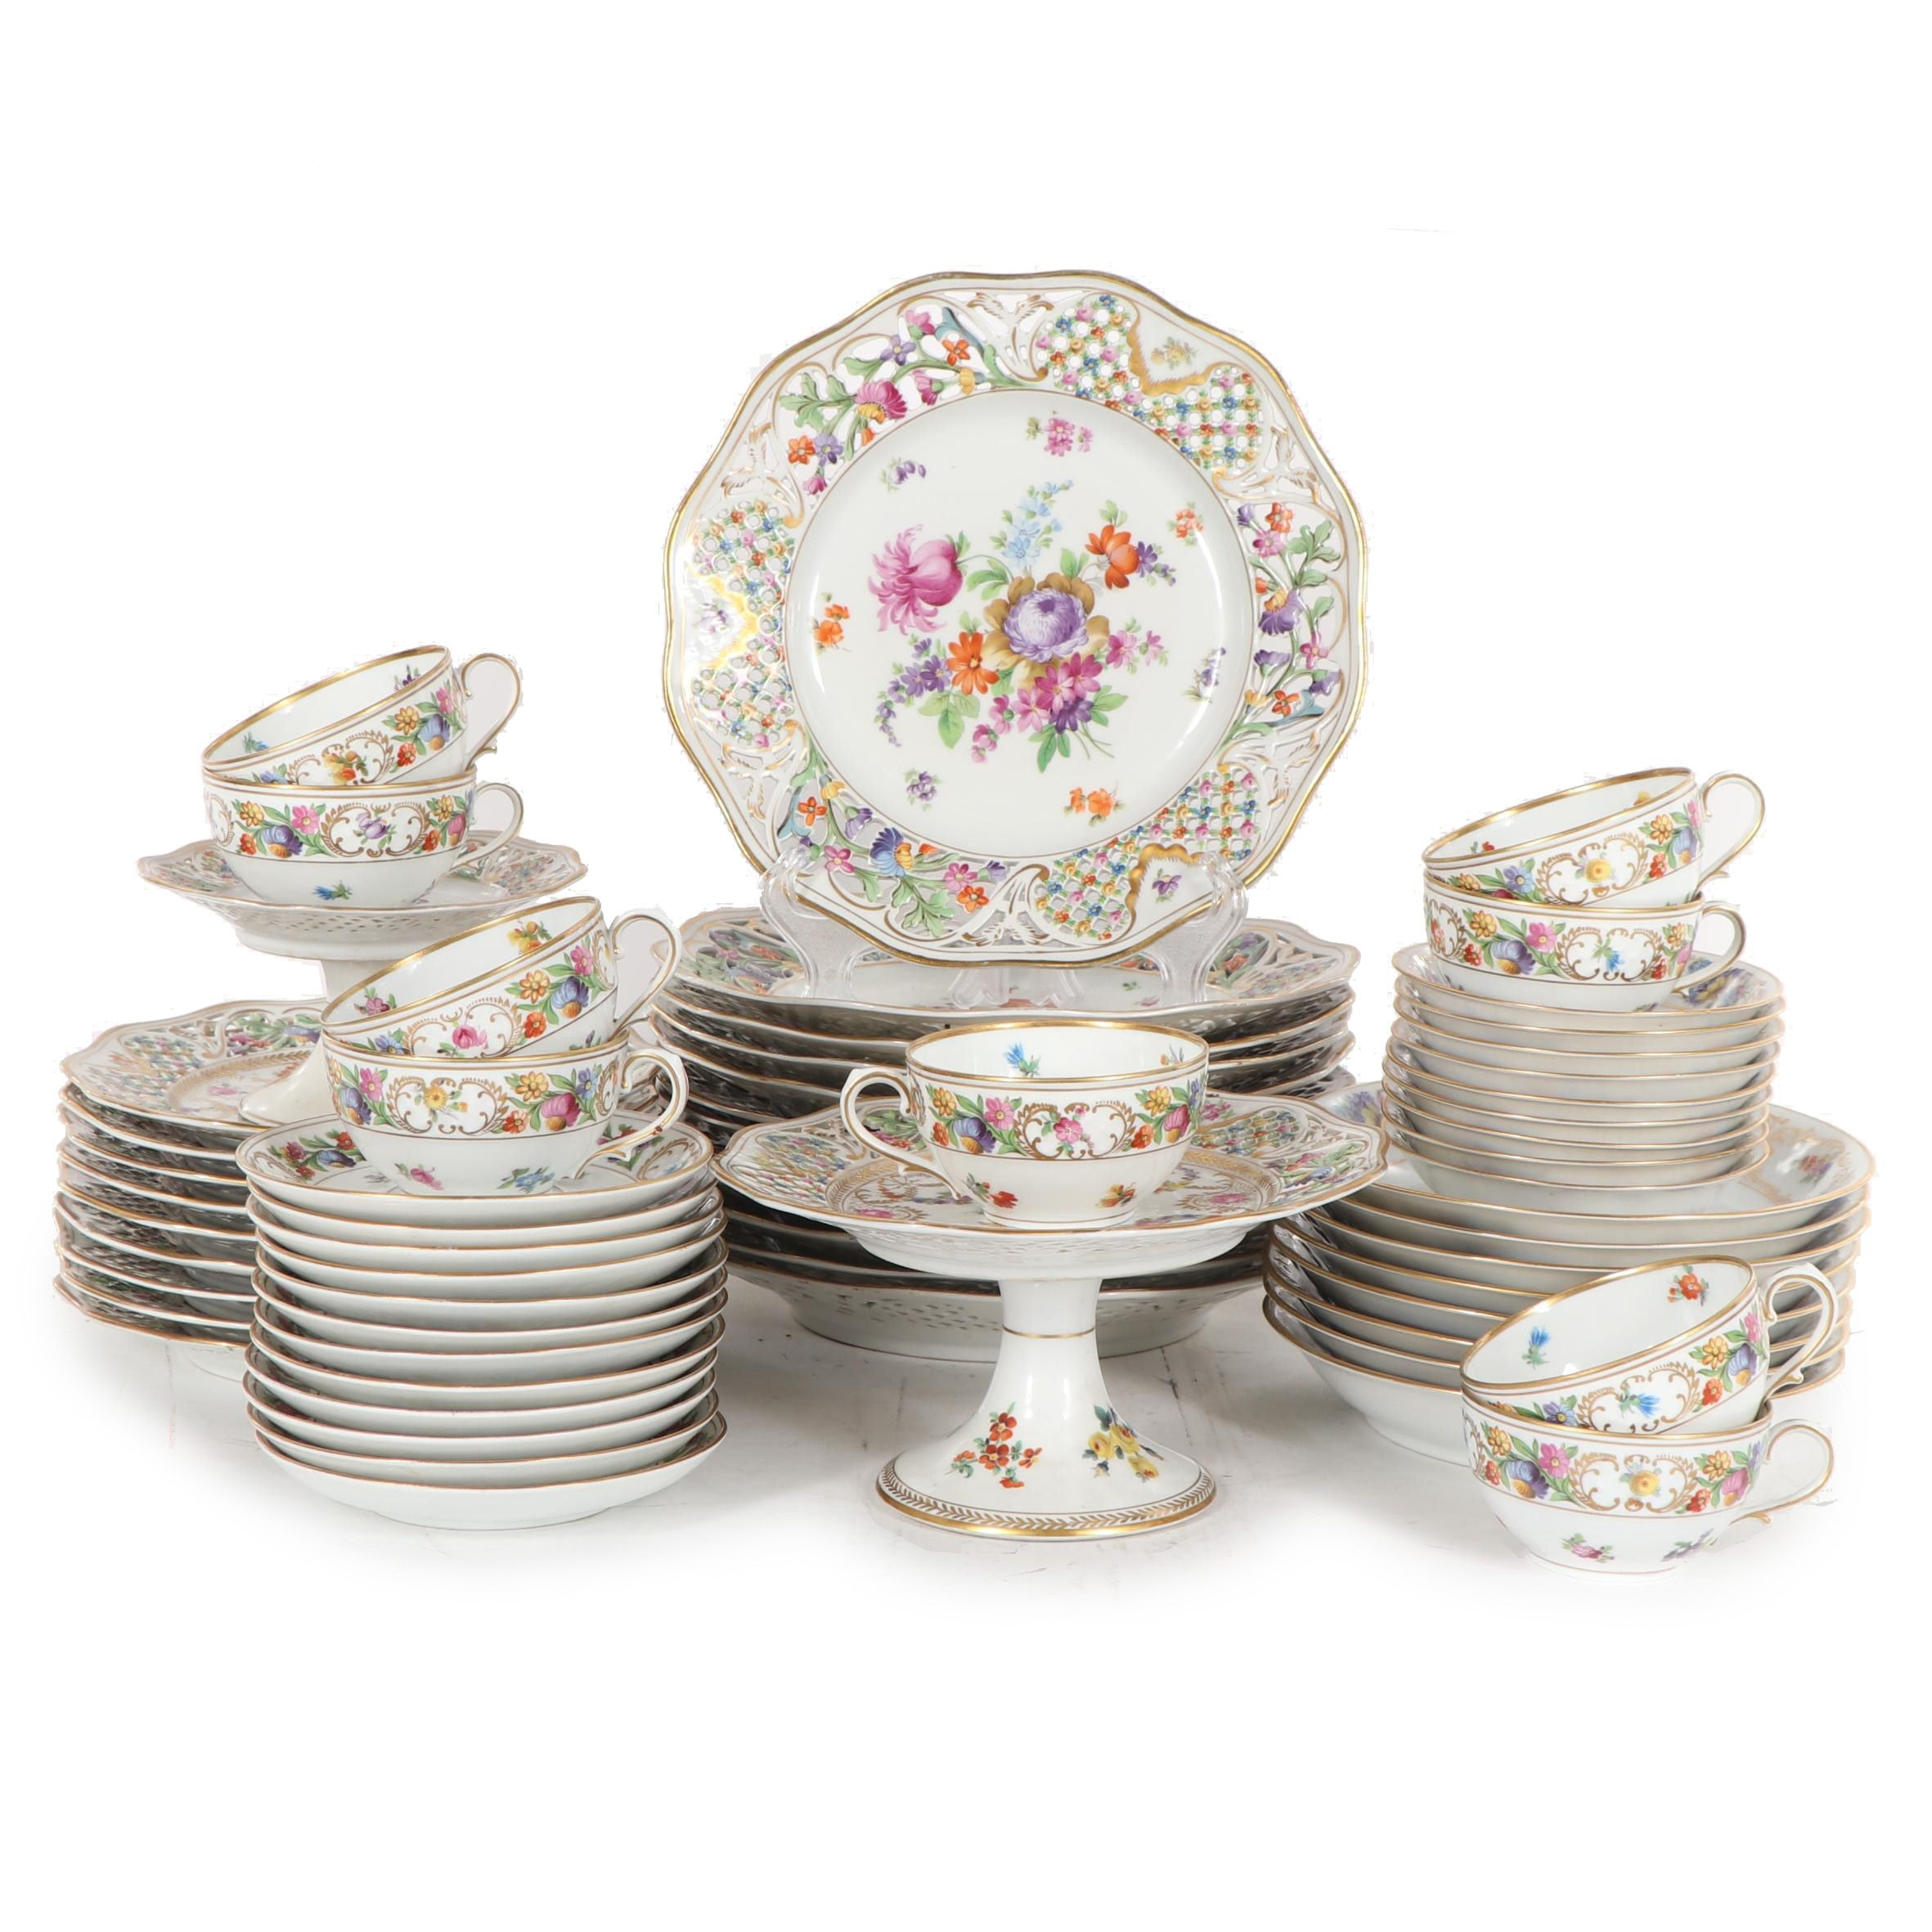 Floral Reticulated Porcelain Dinnerware featuring Schumann-Bavaria, Mid-Century